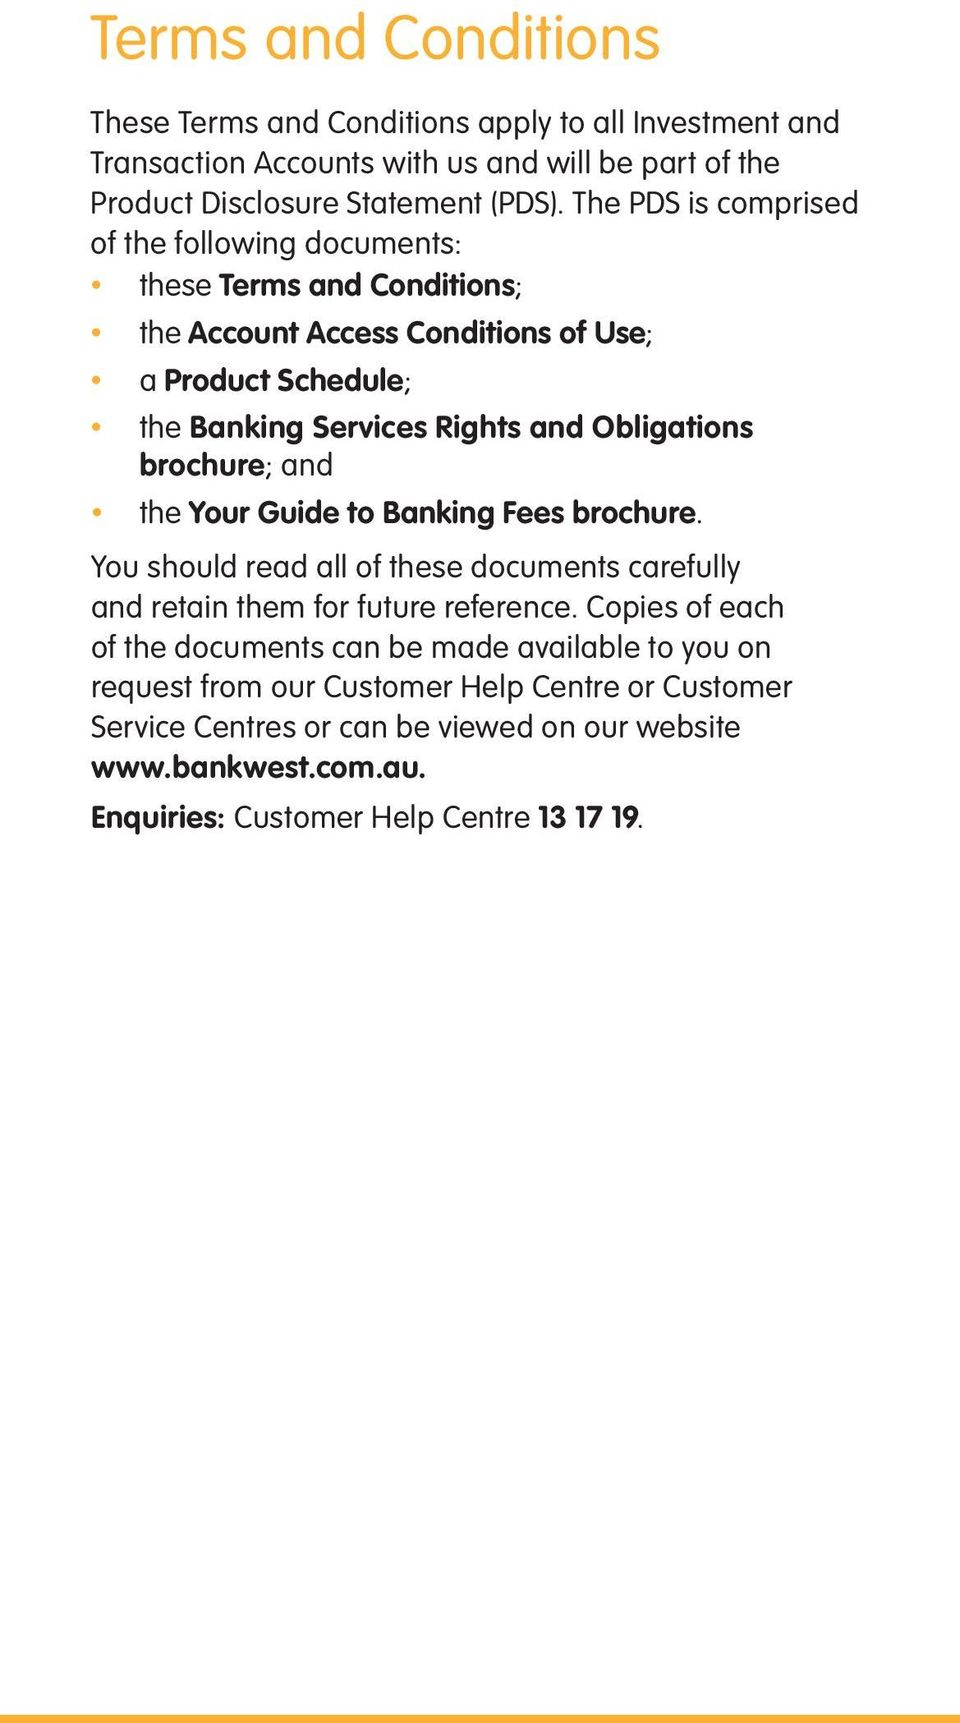 Obligations brochure; and the Your Guide to Banking Fees brochure. You should read all of these documents carefully and retain them for future reference.